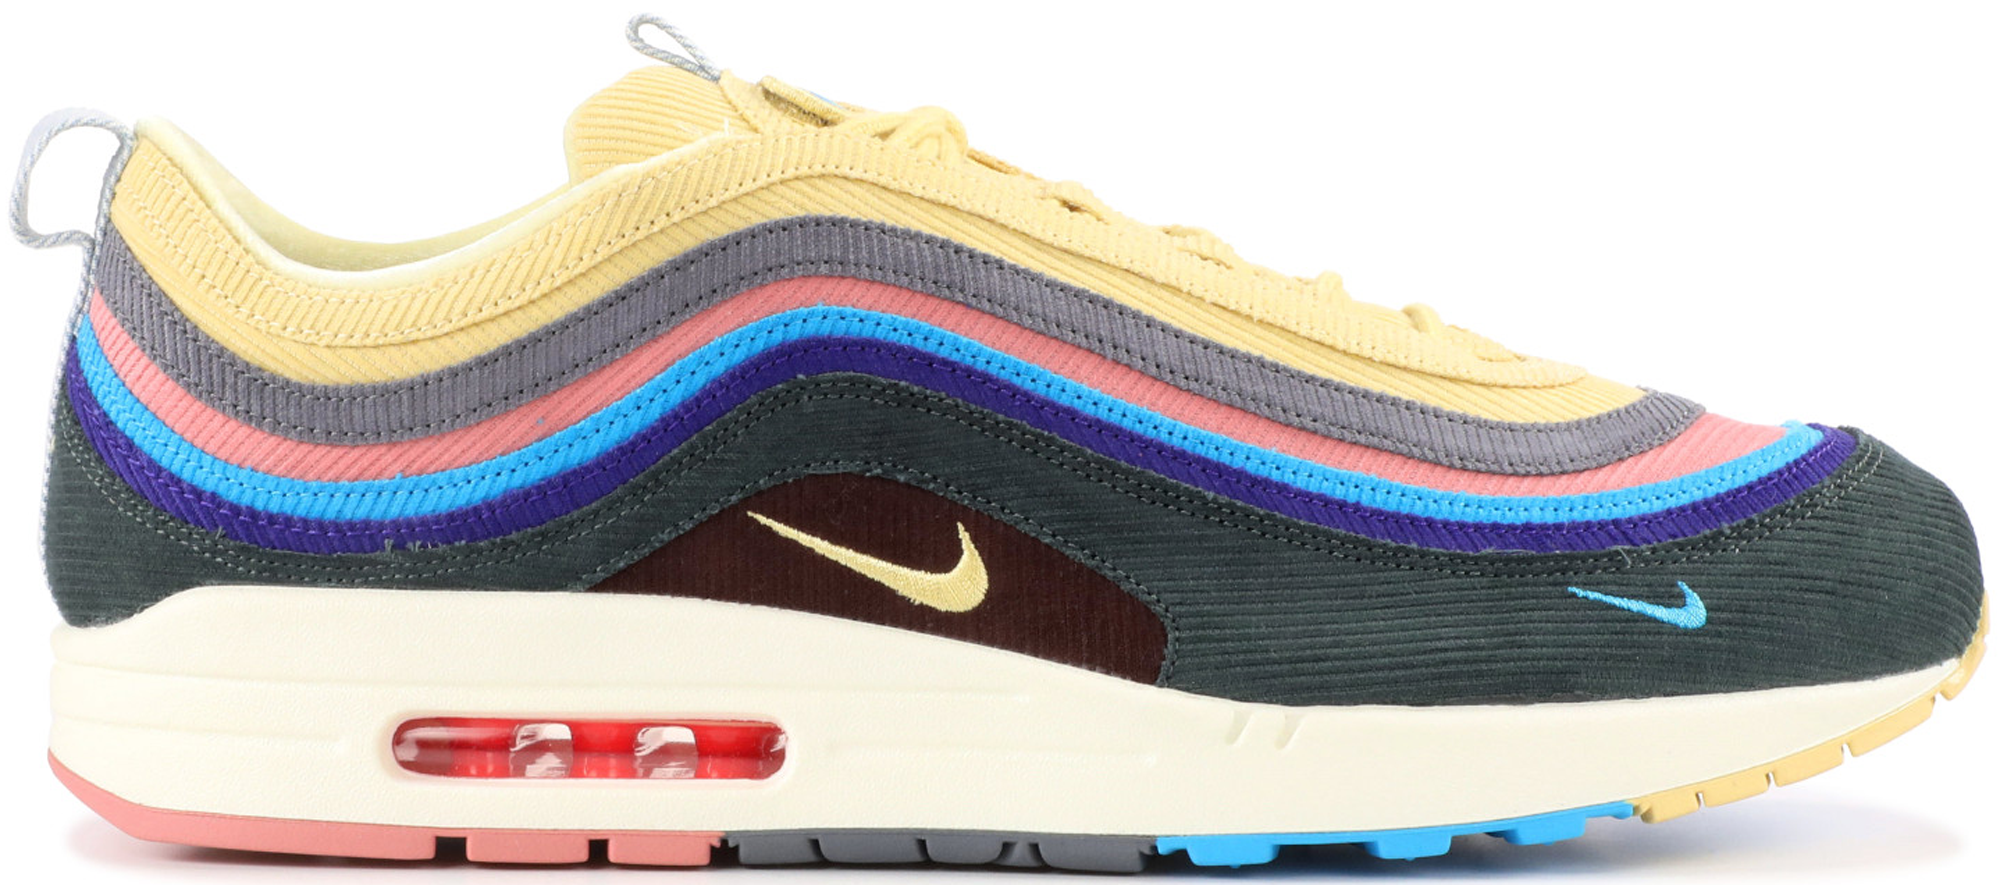 Air Max 97/1 Sean Wotherspoon (No Accessories)